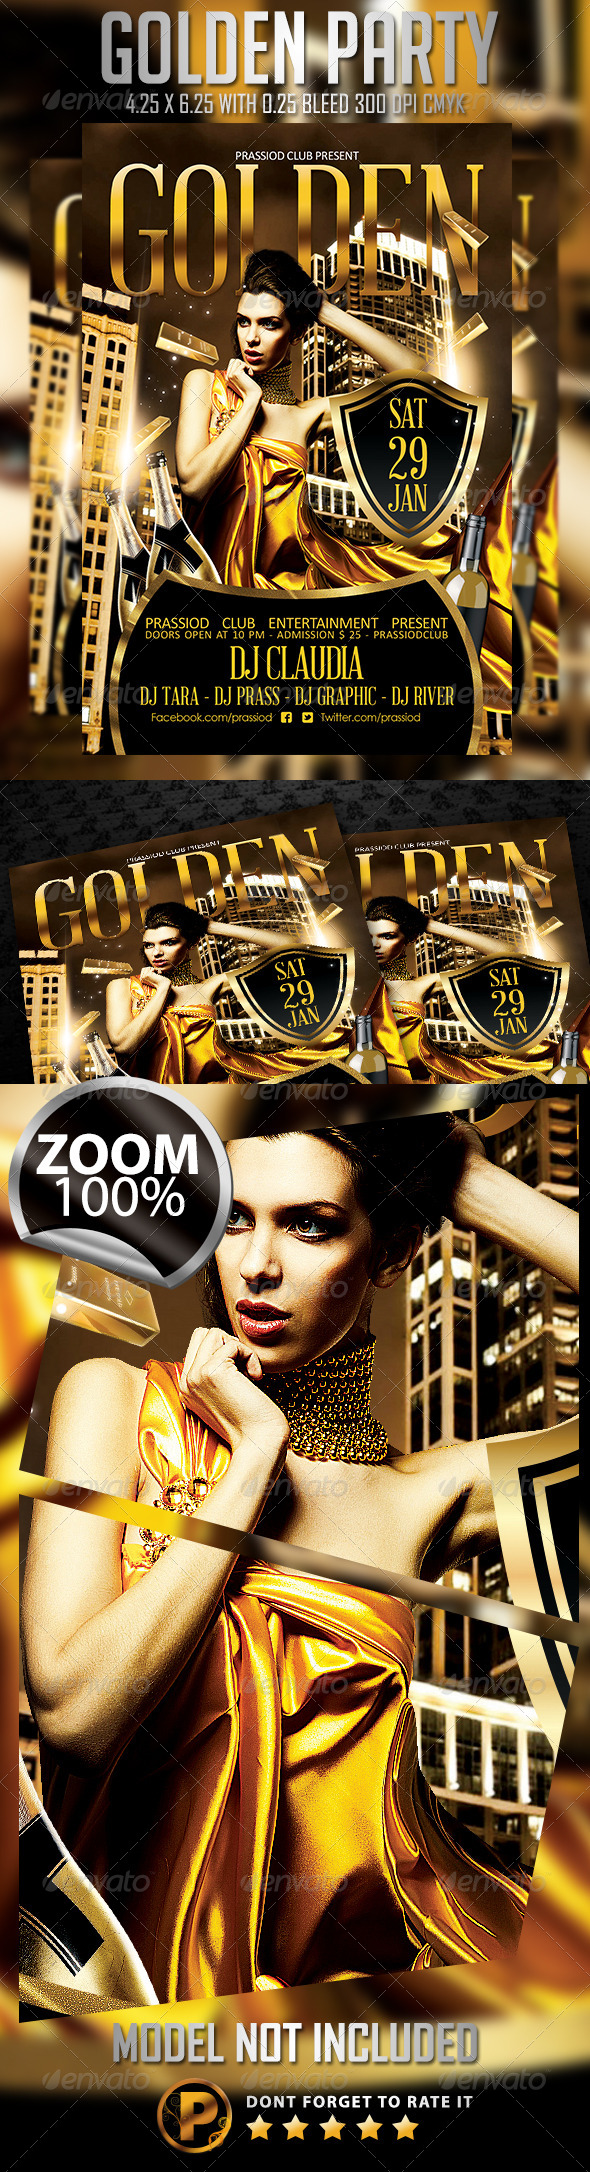 Golden Party Flyer Template - Clubs & Parties Events